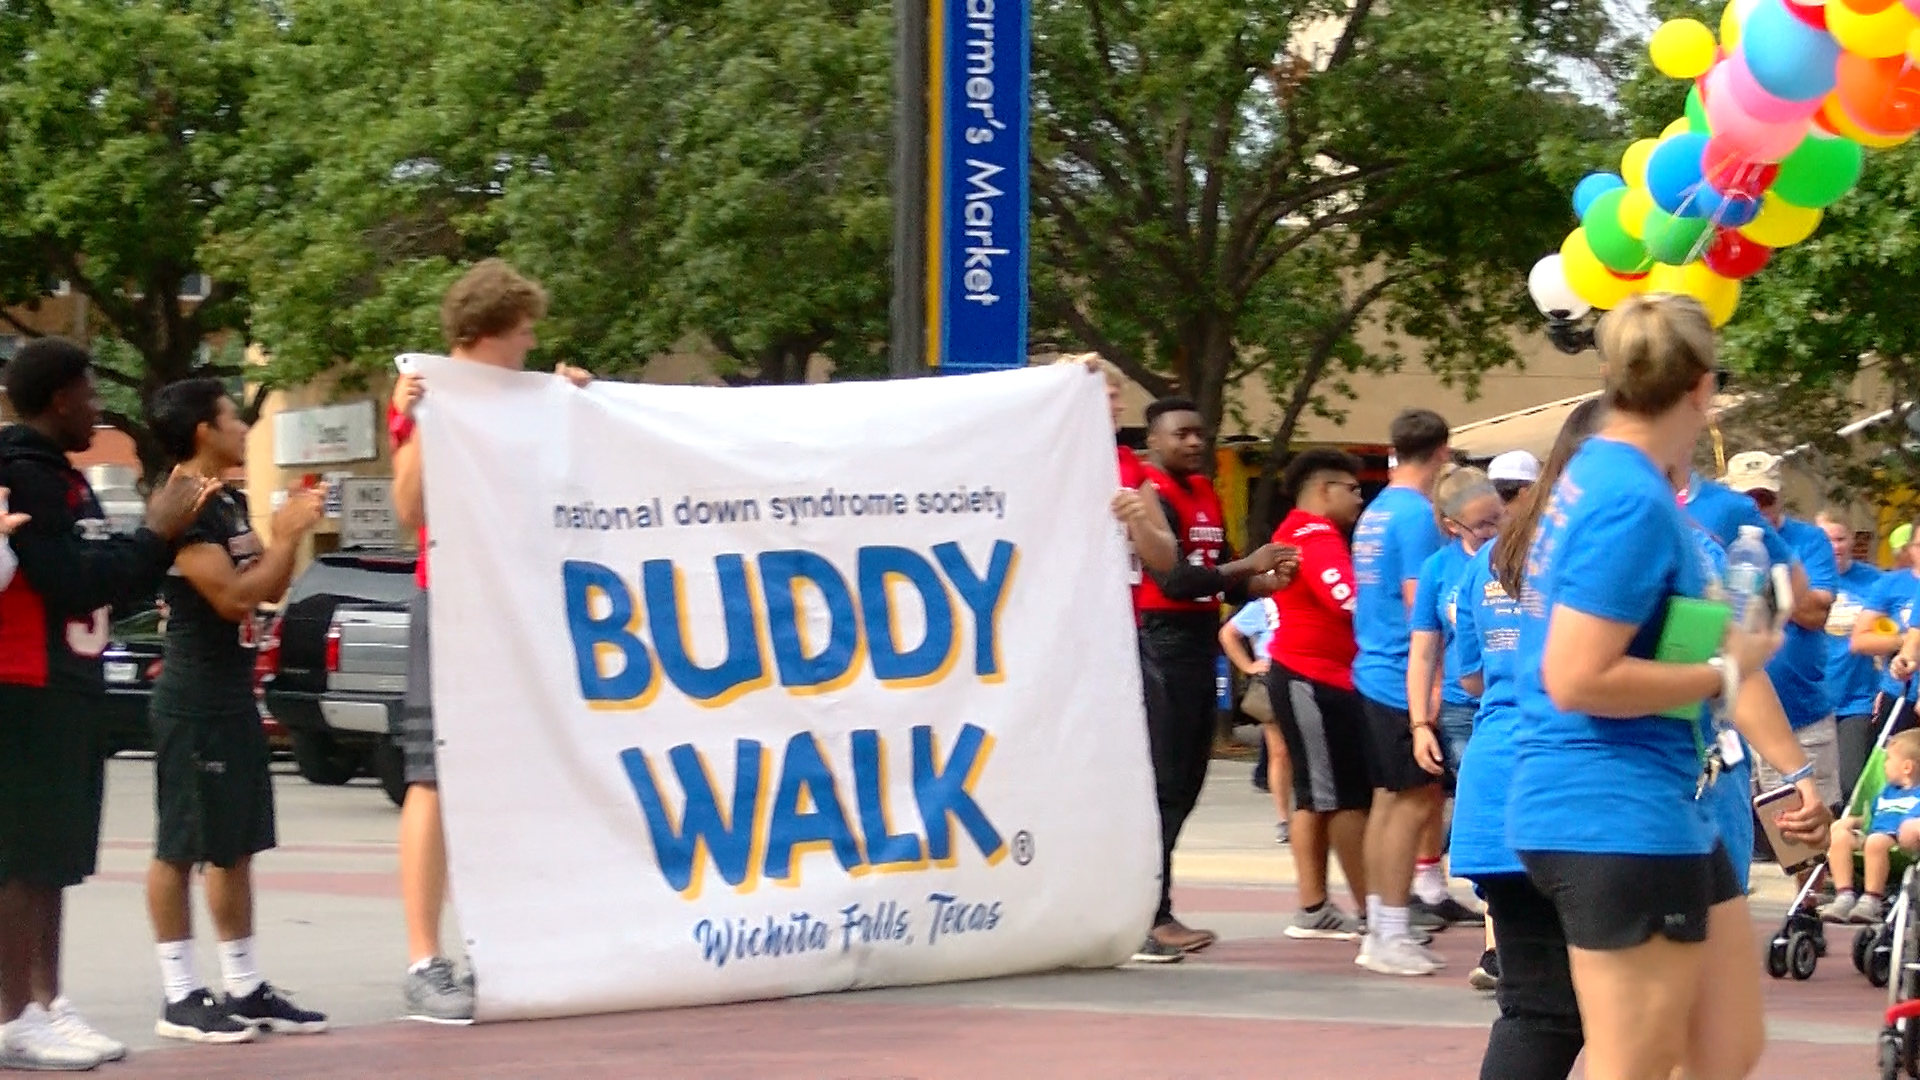 If you are not sure how you will be spending your weekend you can celebrate Down Syndrome at the annual Buddy Walk on Saturday.